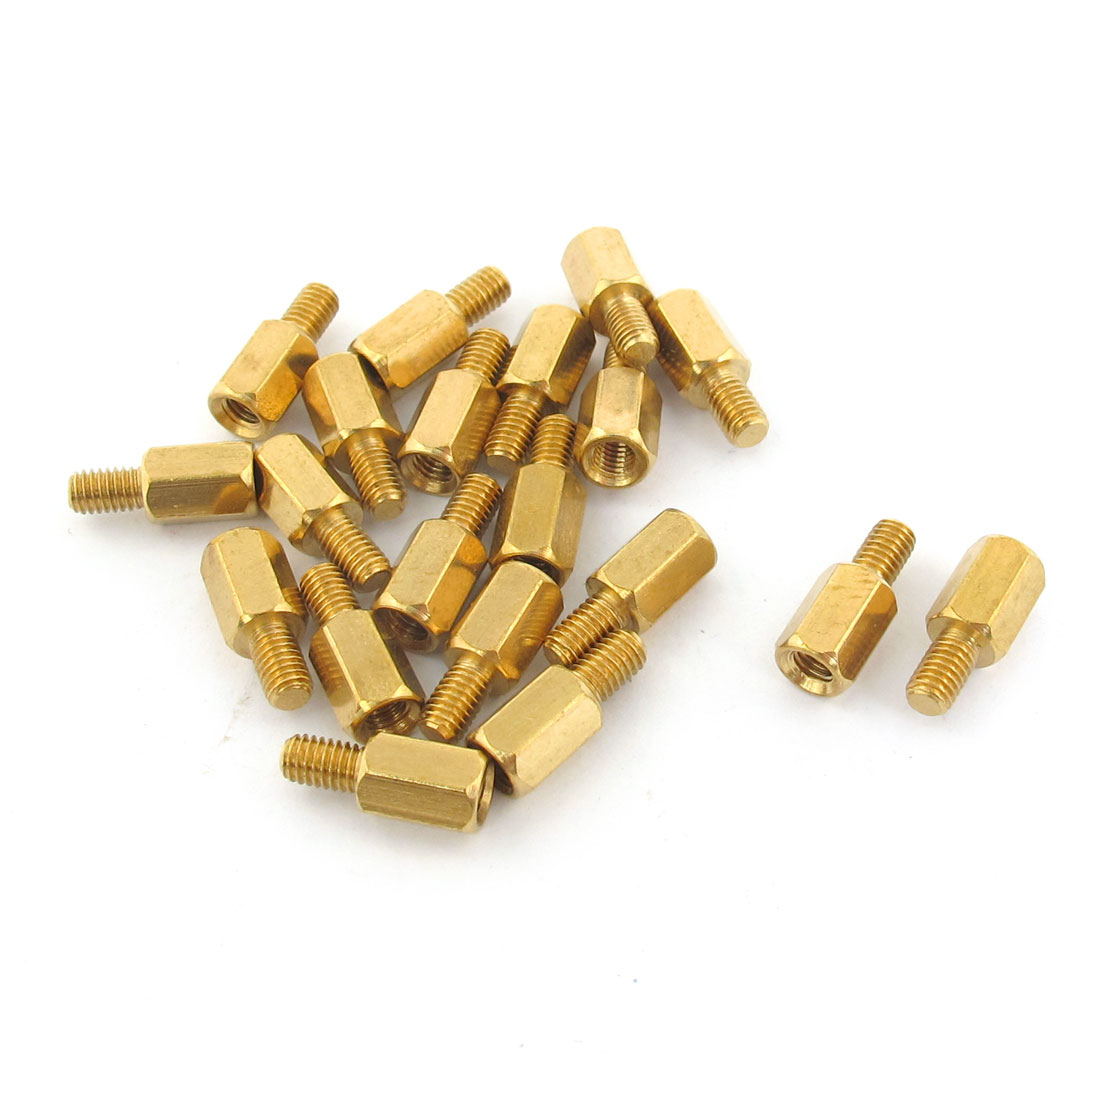 20pcs M3 Male to Female 7mm+5mm Screw Threaded Brass Hexagon Standoff Spacer for PCB Motherboard